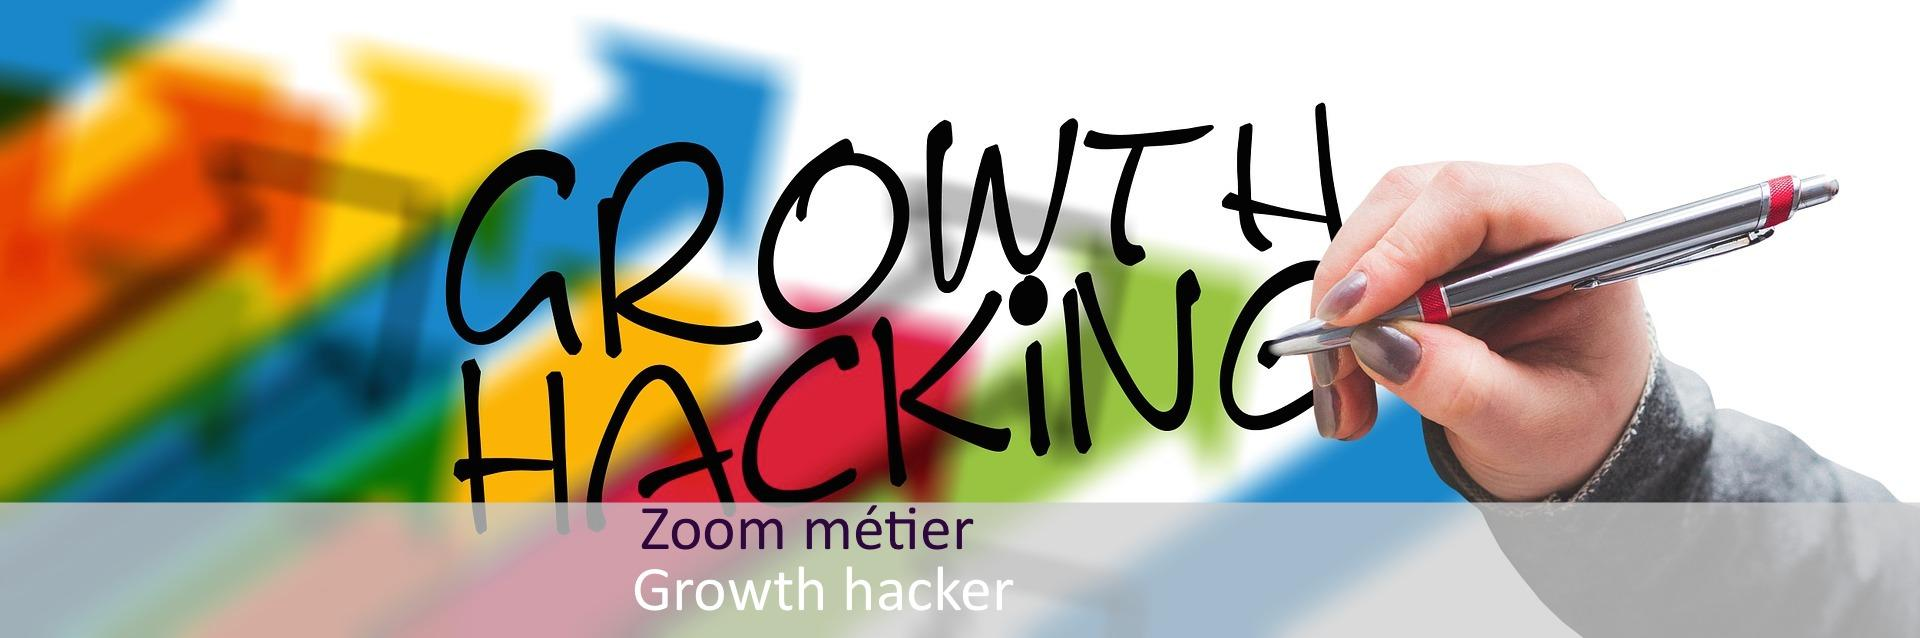 zoom métier growth hacker